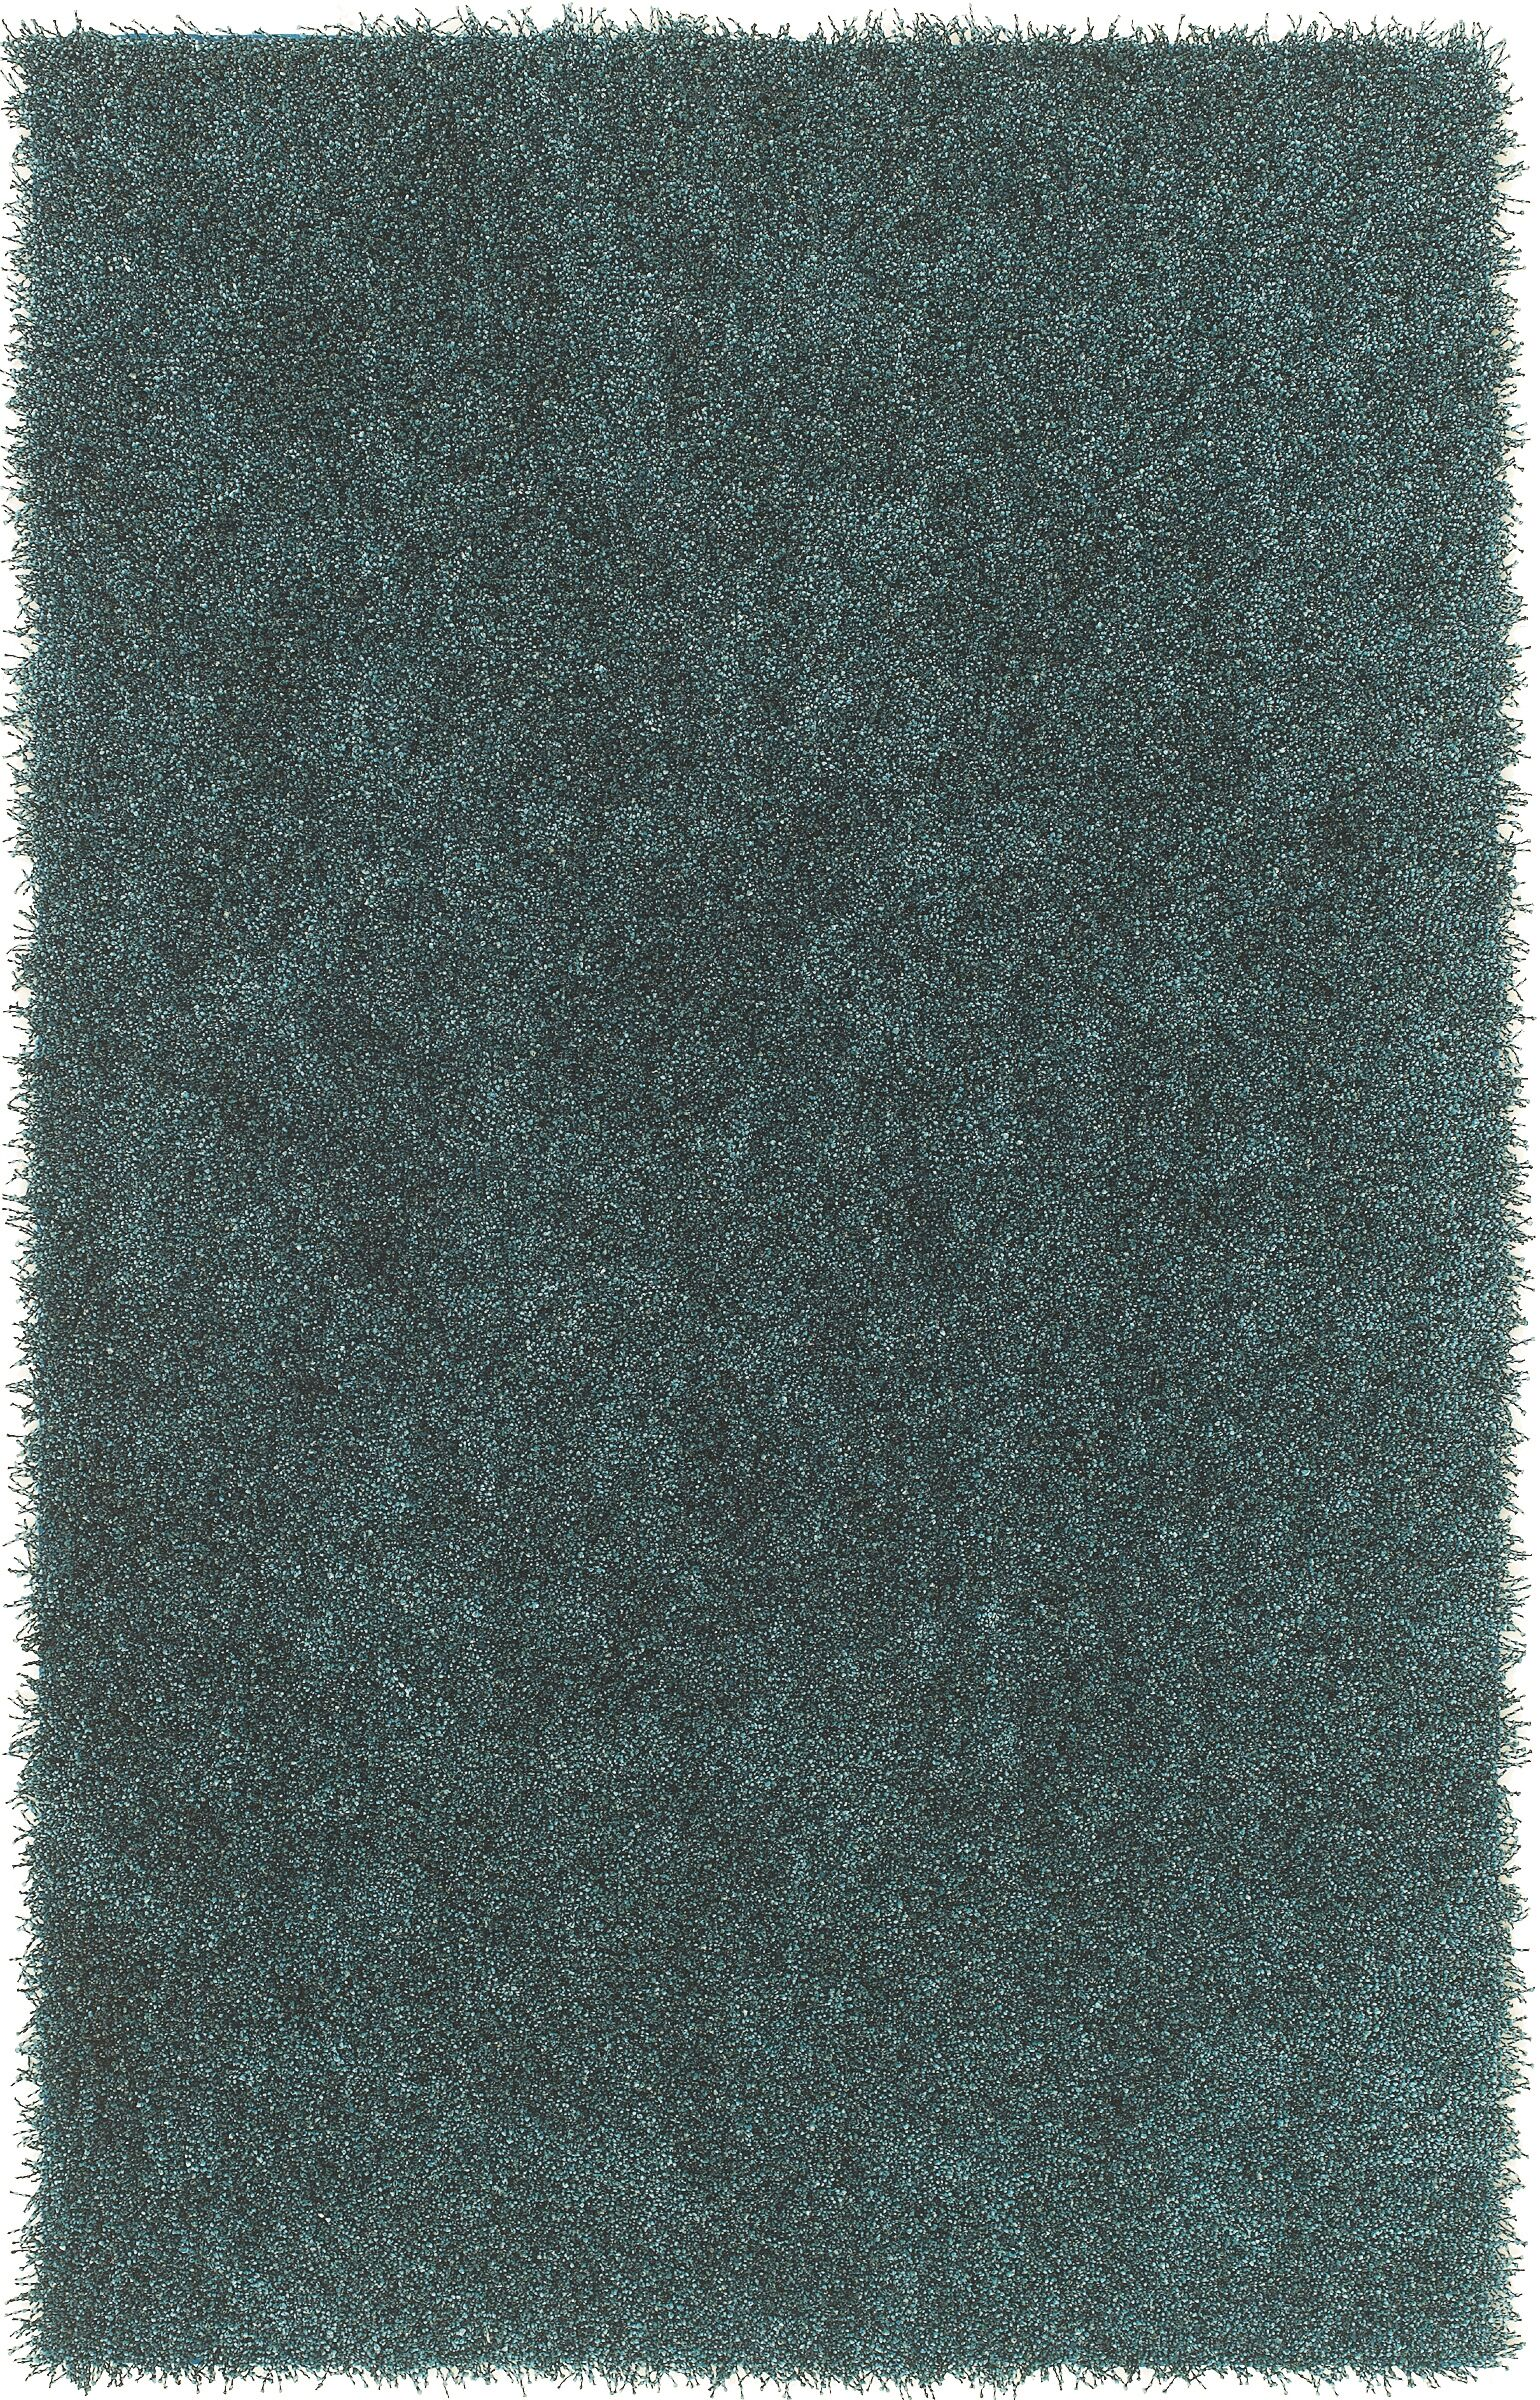 Belize Teal Balloon Area Rug Rug Size: Rectangle 5' x 7'6